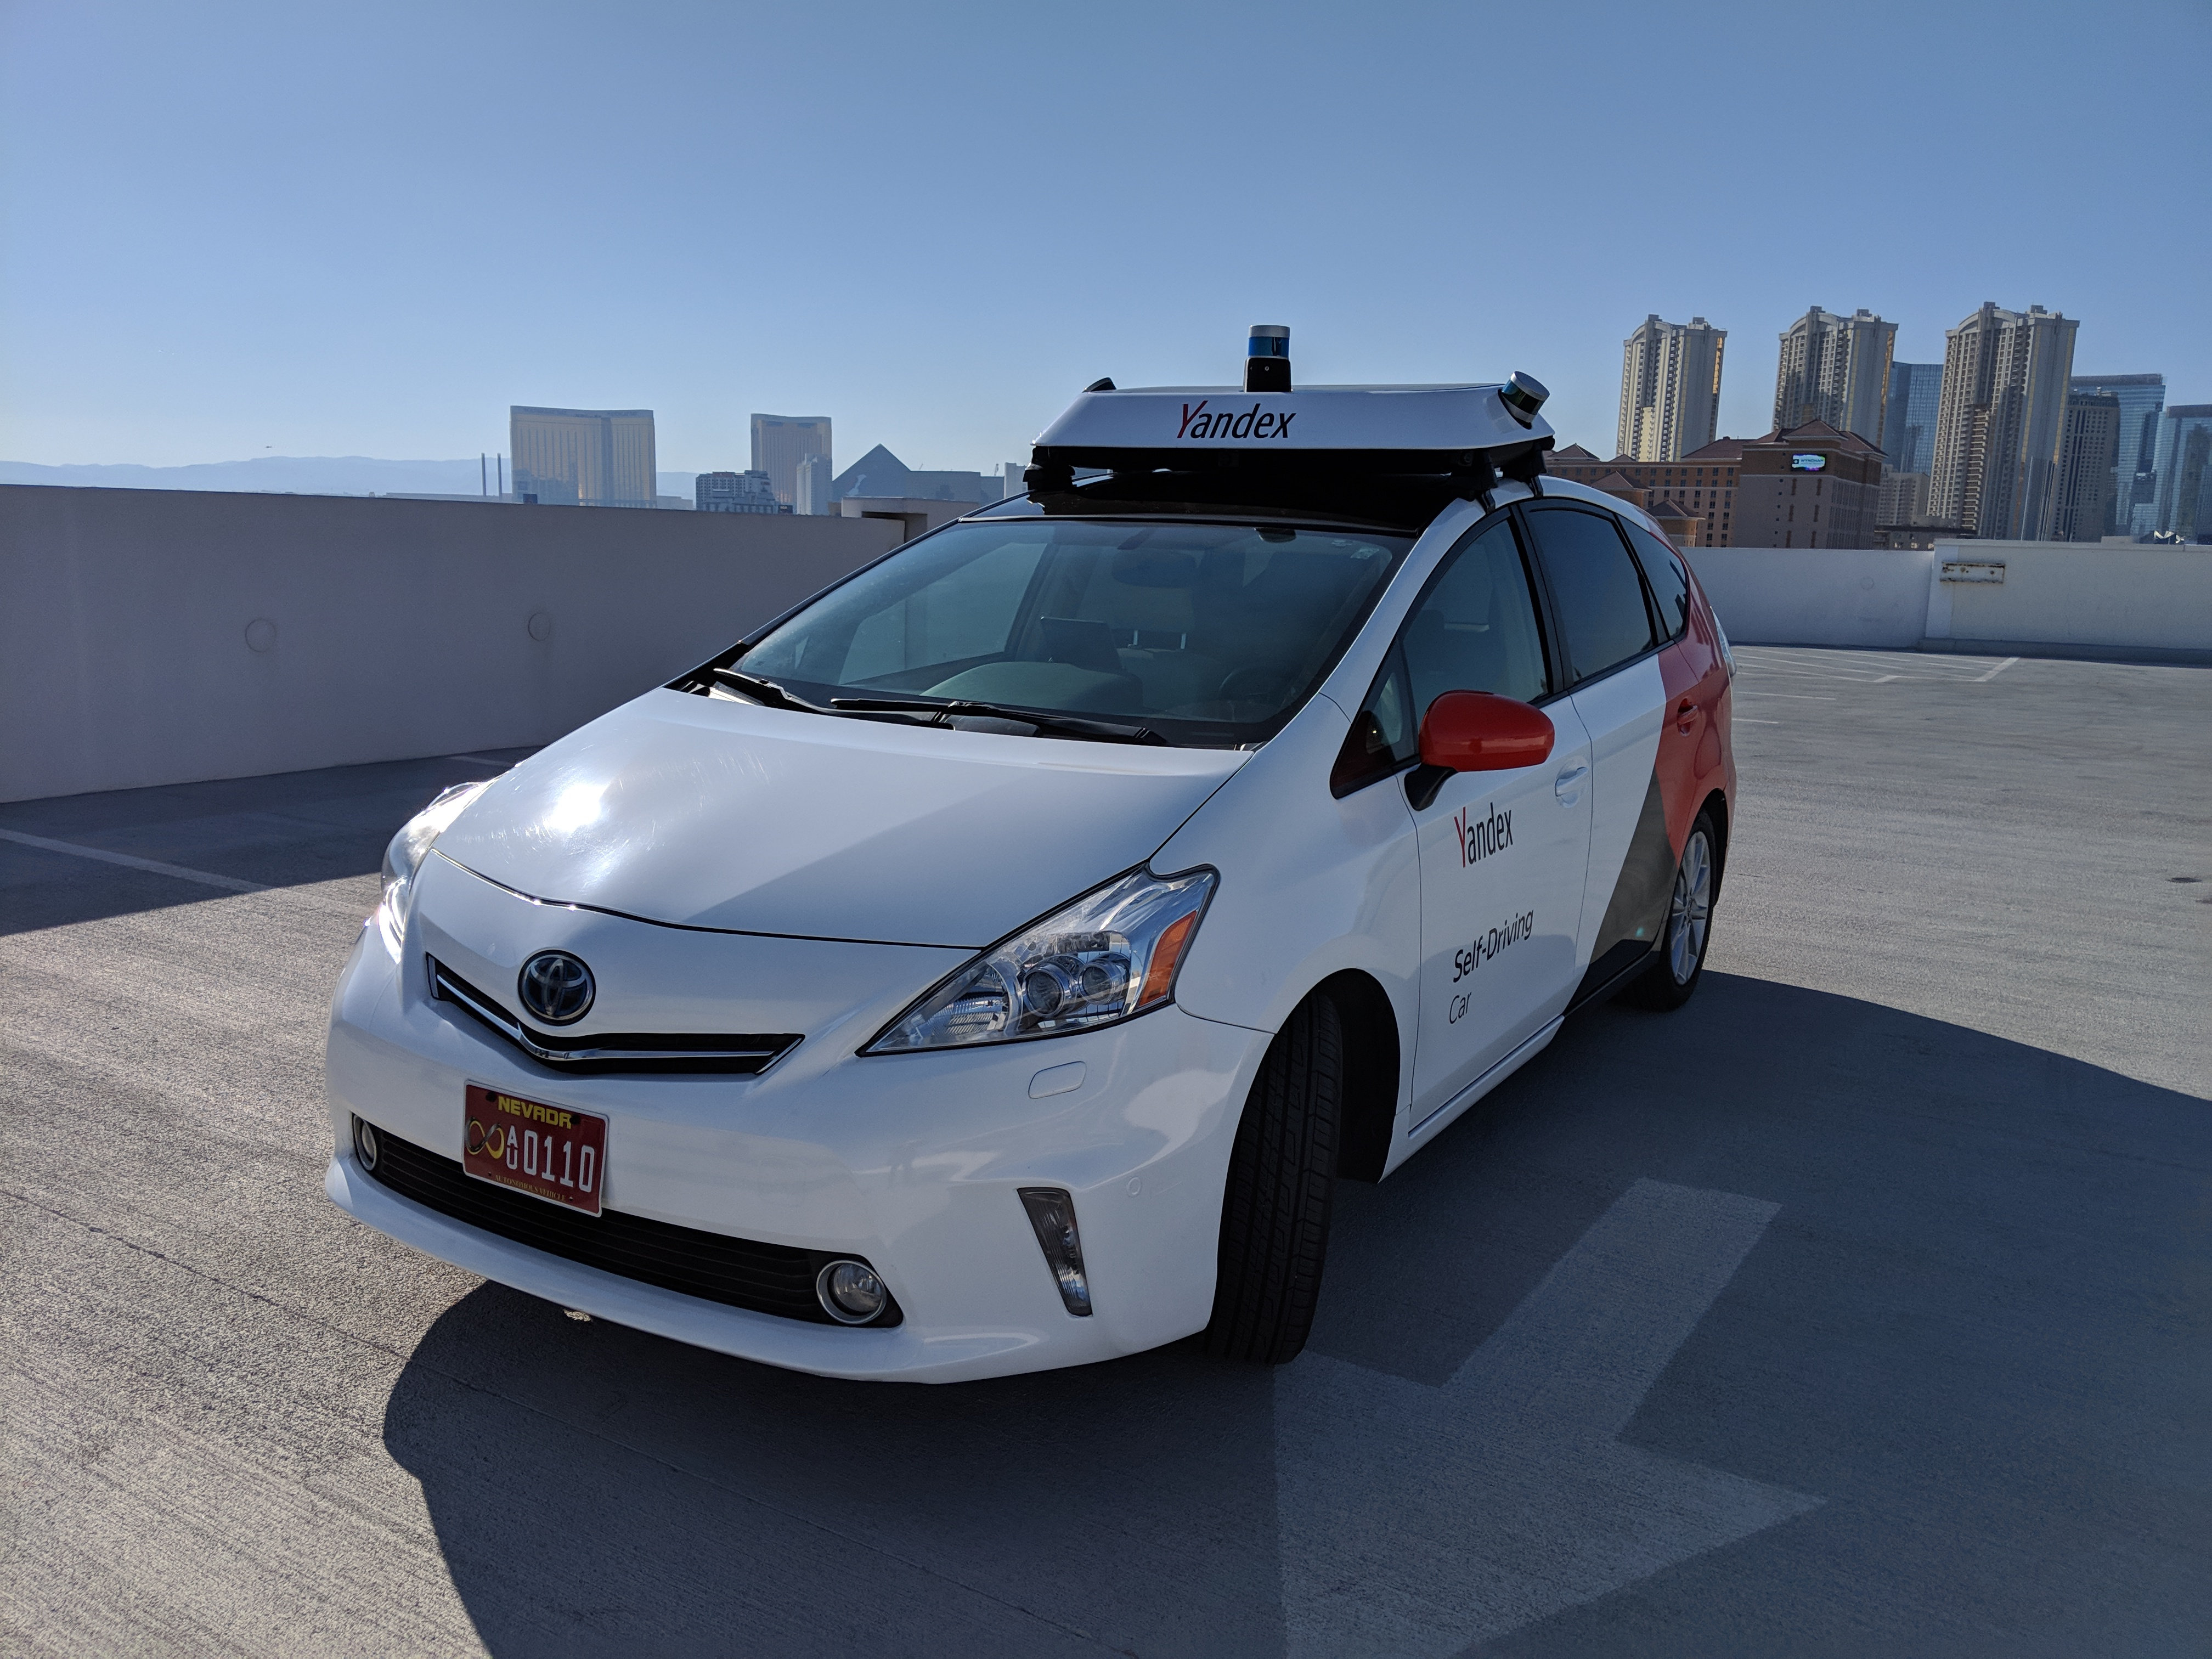 Yandex Demonstrates Self-Driving Car on the Streets of Las